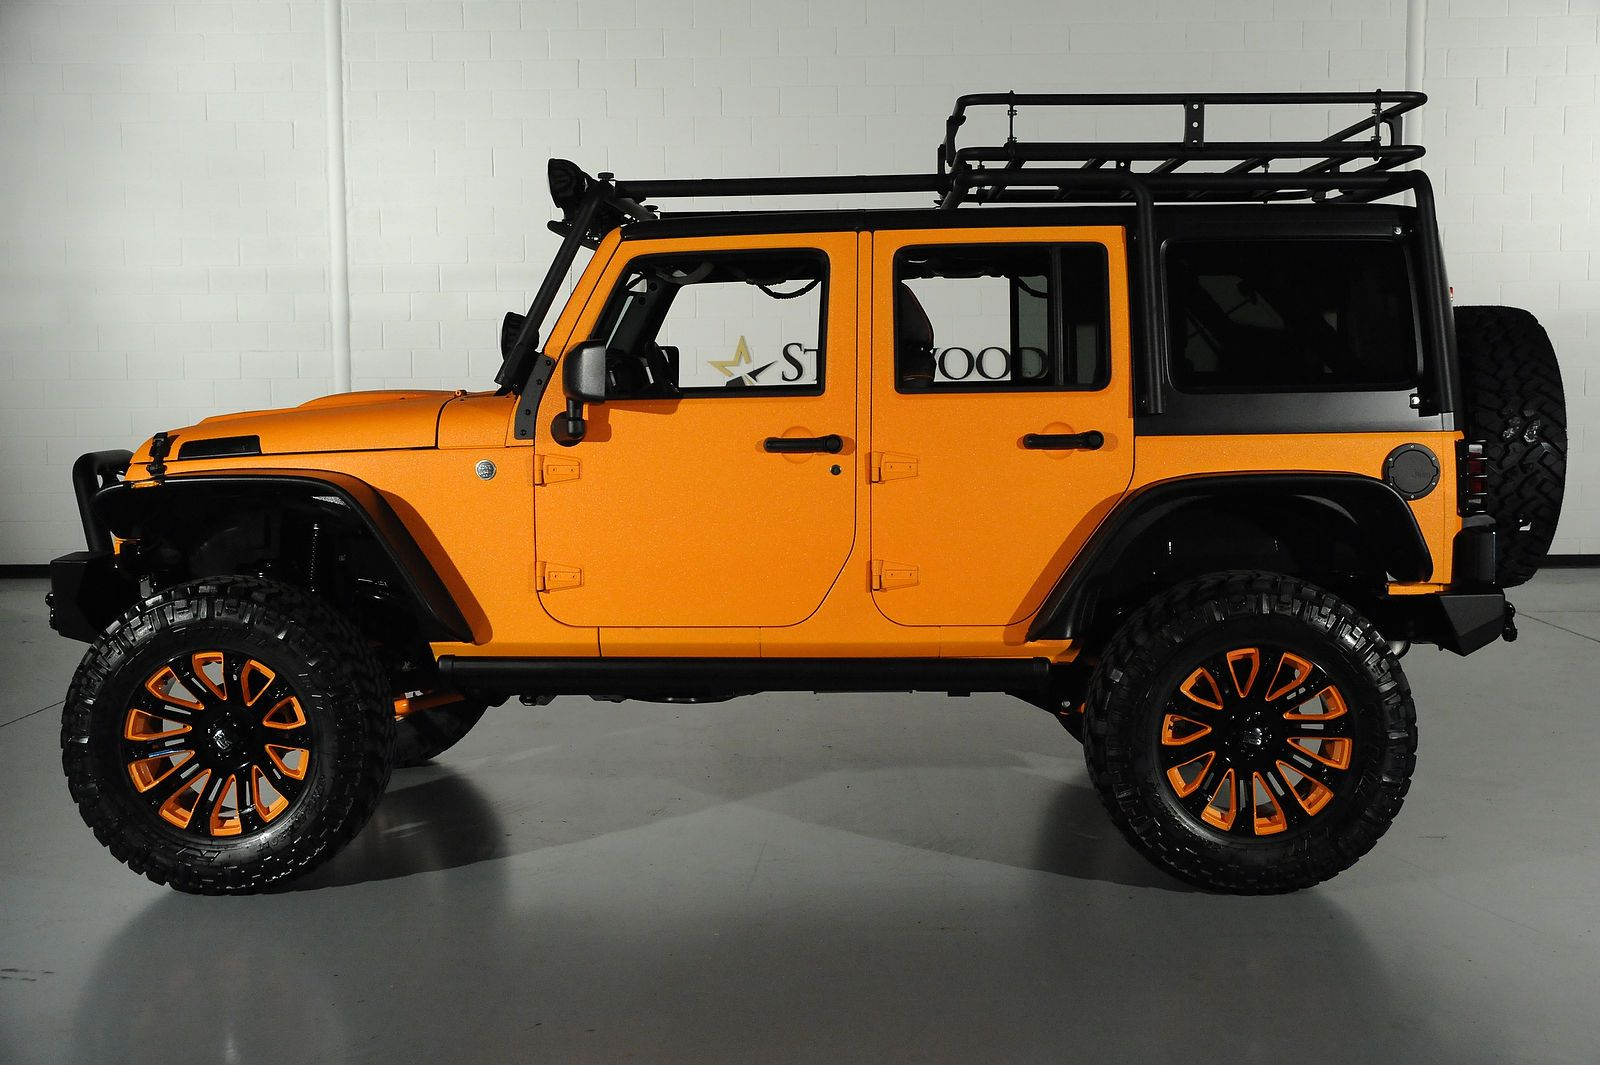 '14 Jeep Wrangler Unlimited Starwood Dallas Jeep pickup